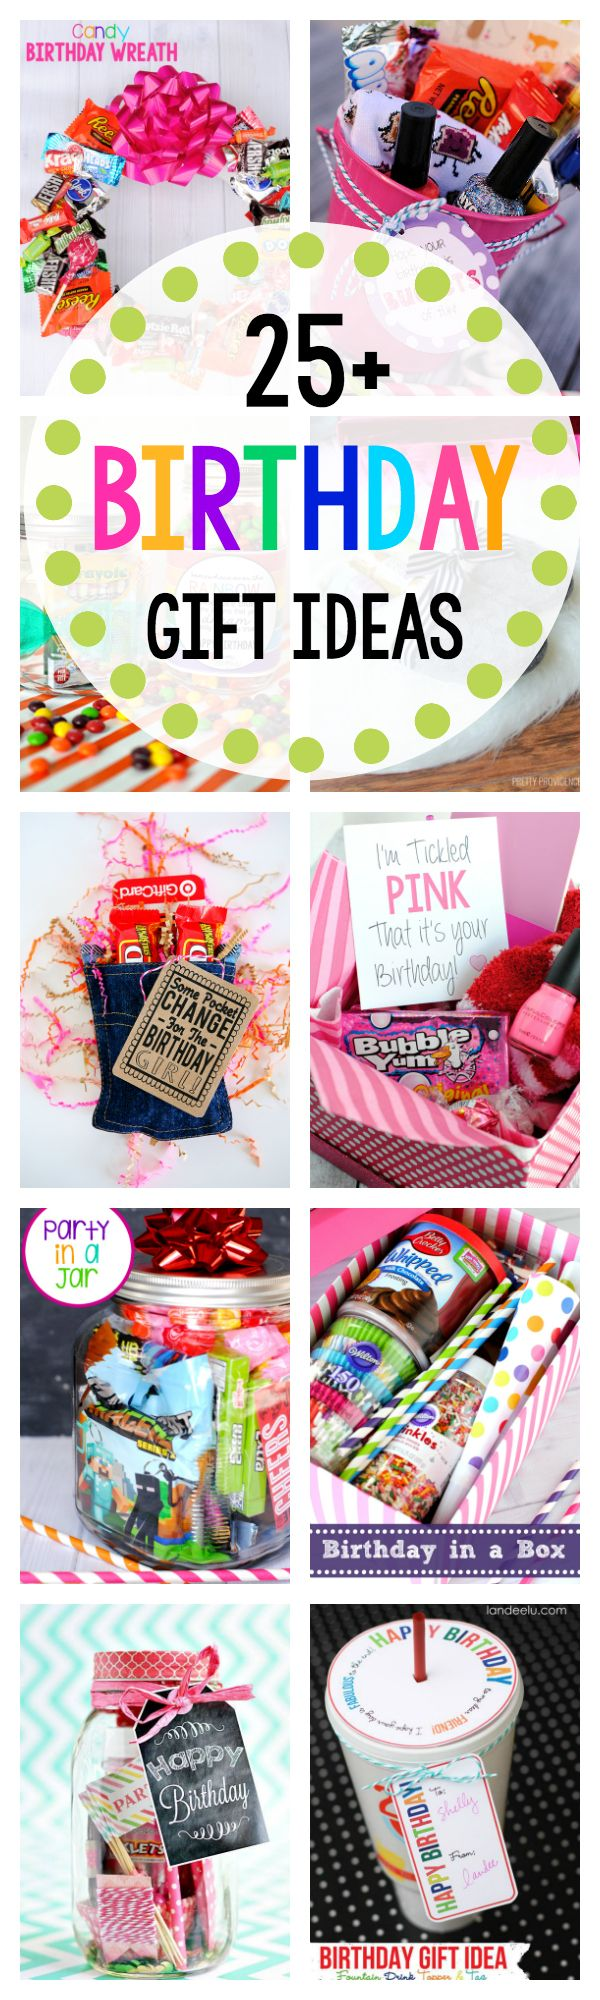 DIY Gifts Ideas 25 Amazing Fun Birthday Gift Ideas For Friends